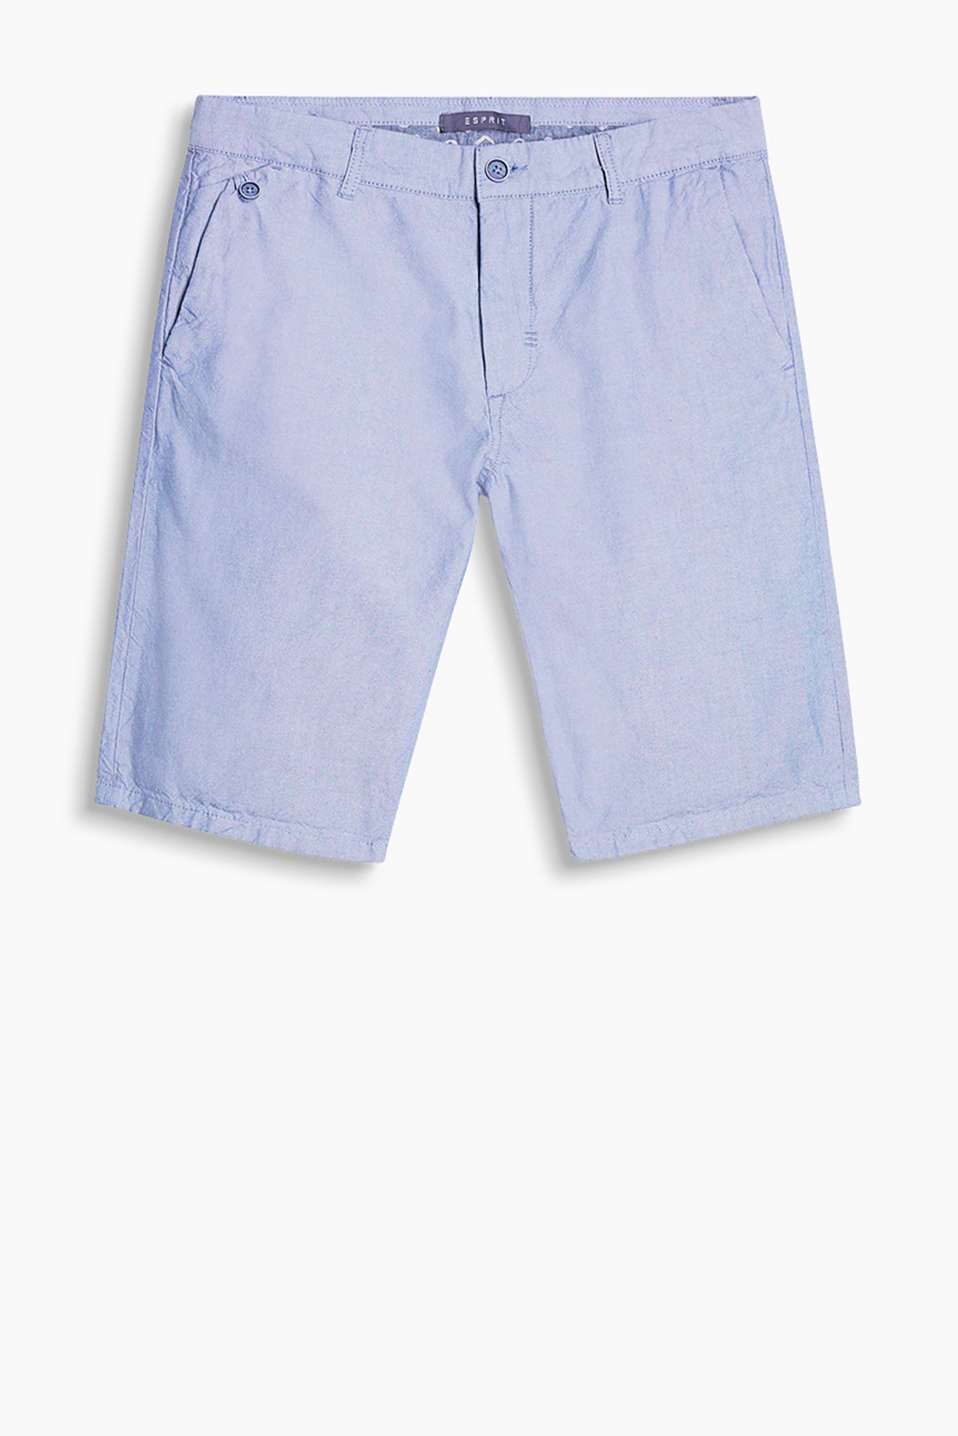 Melange cotton chambray shorts in a summery look